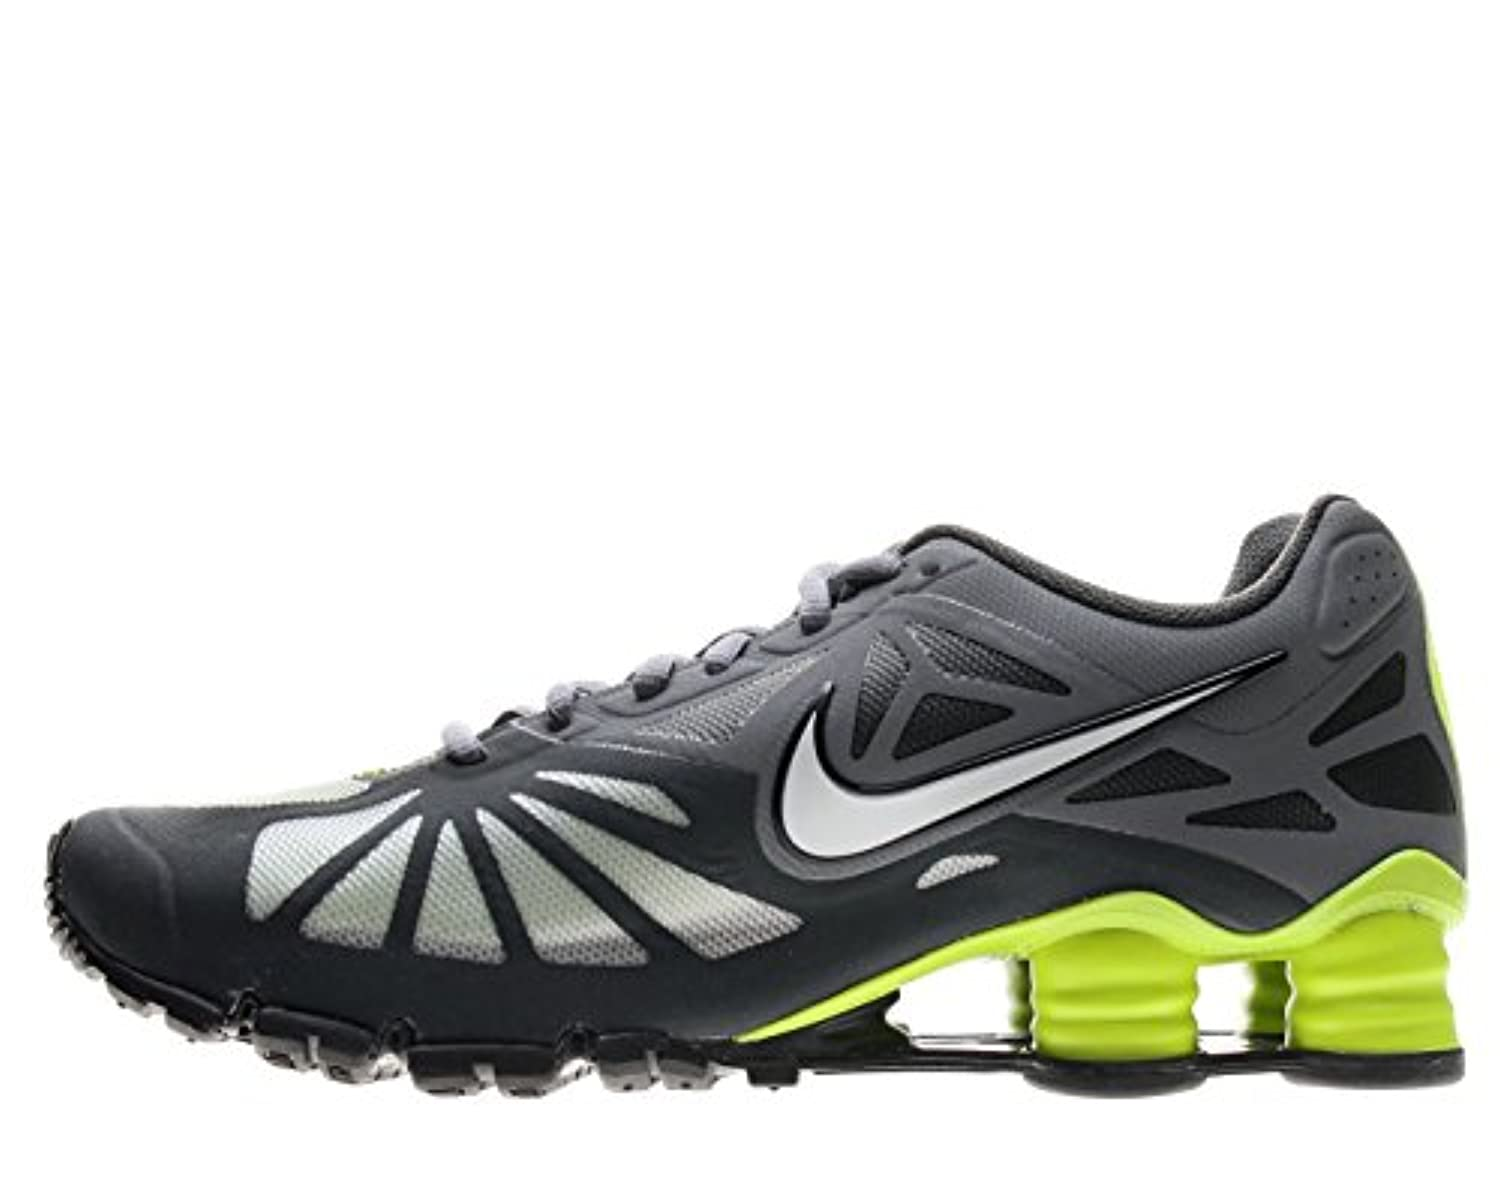 best website 29f1d 05984 Nike Shox Turbo 14 Mens Running Shoes 631760-007 Anthracite 8 M US | $91.88  - Buy today!